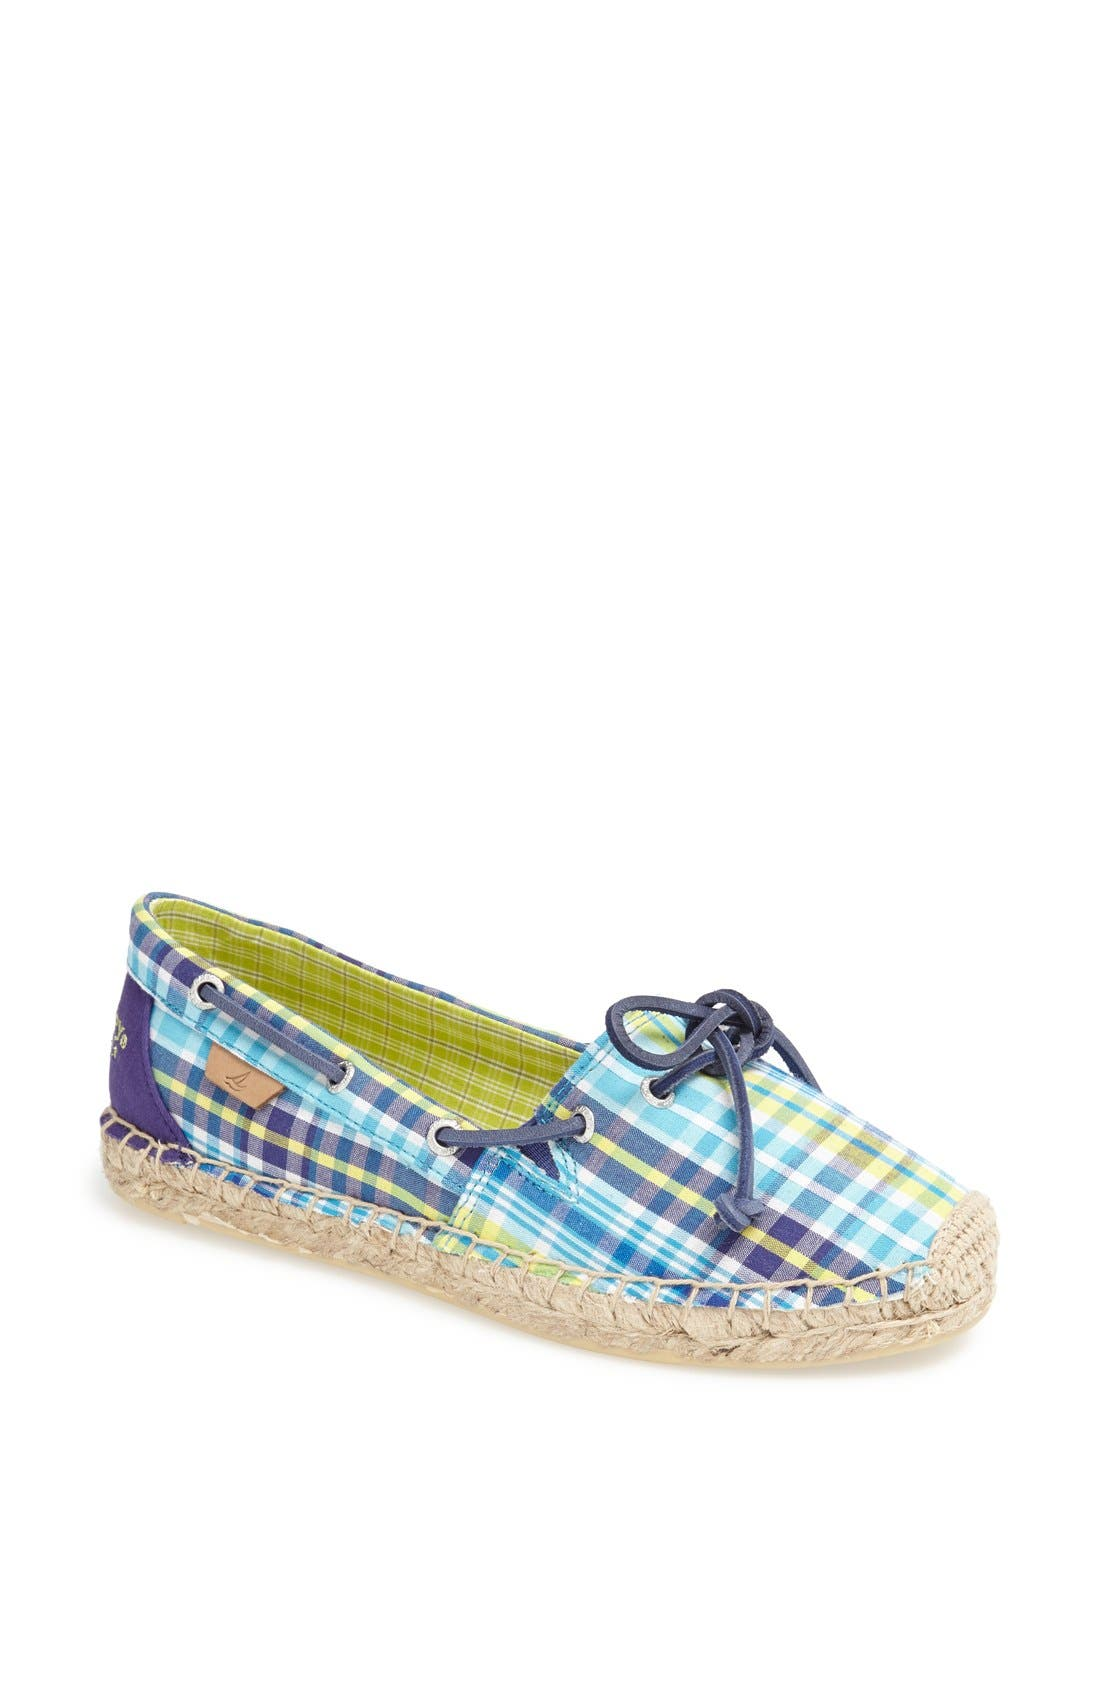 Alternate Image 1 Selected - Sperry Top-Sider® 'Katama' Flat